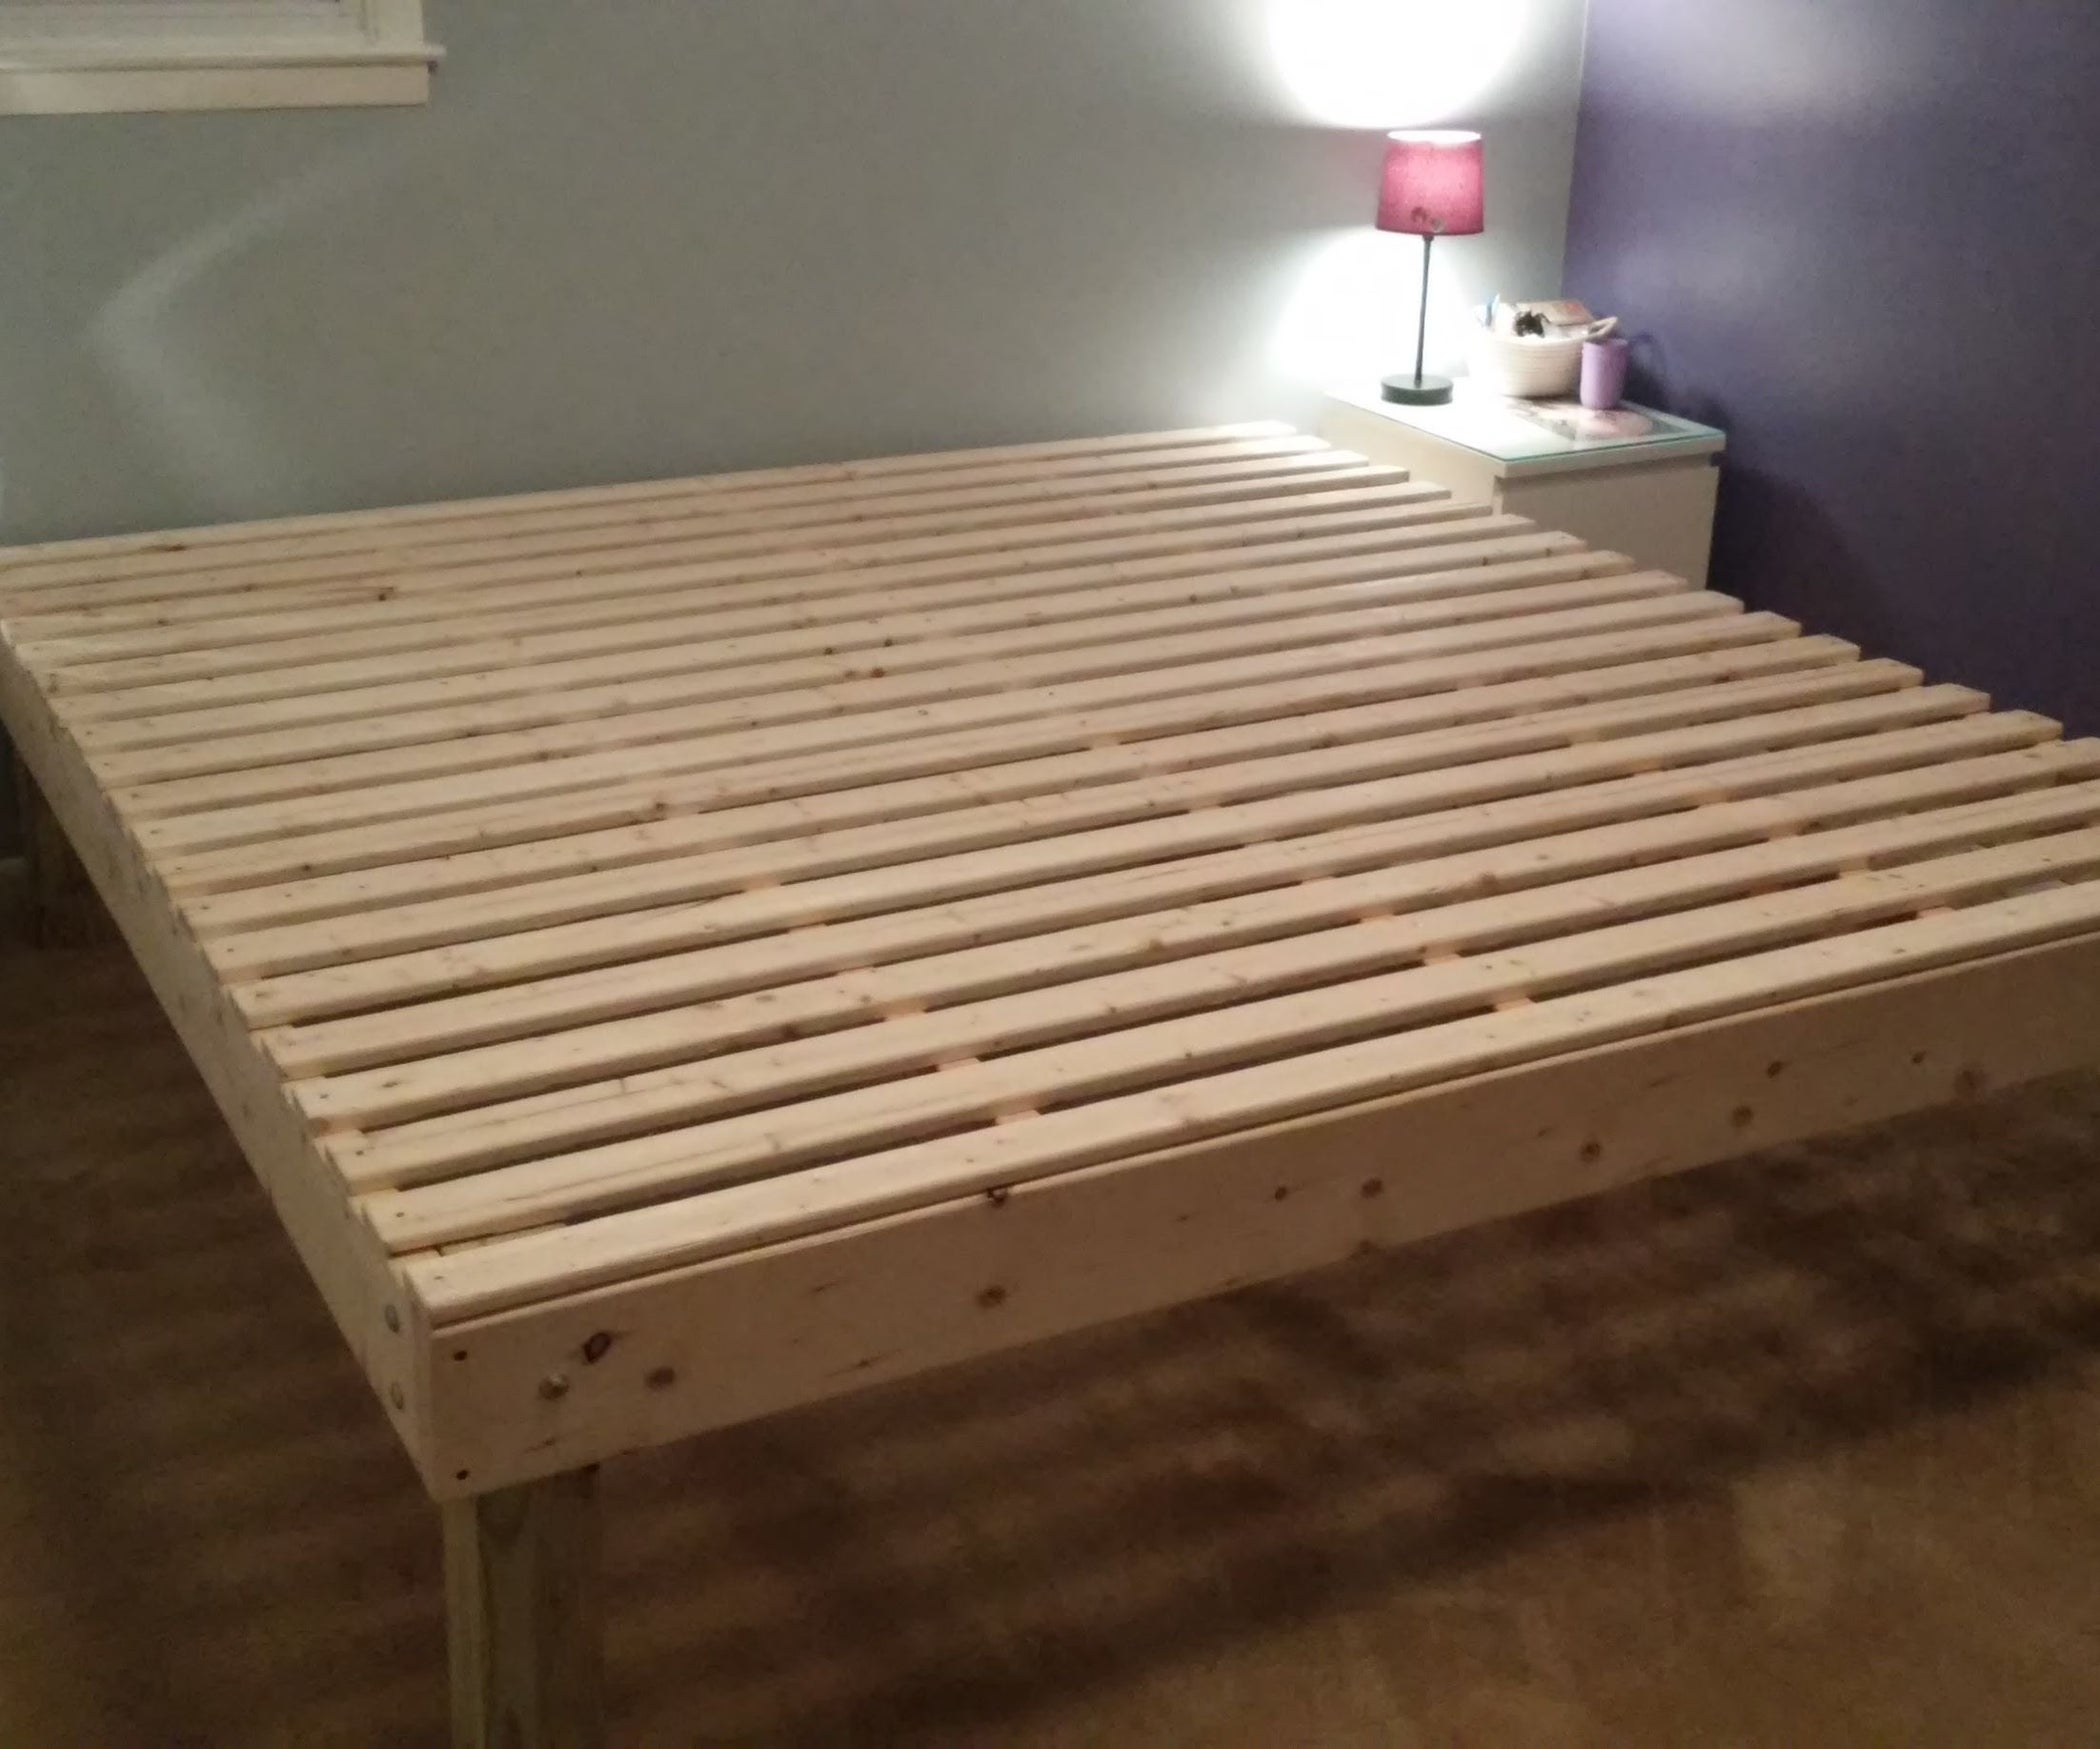 Foam Mattress Bed Frame For Under 100 9 Steps With